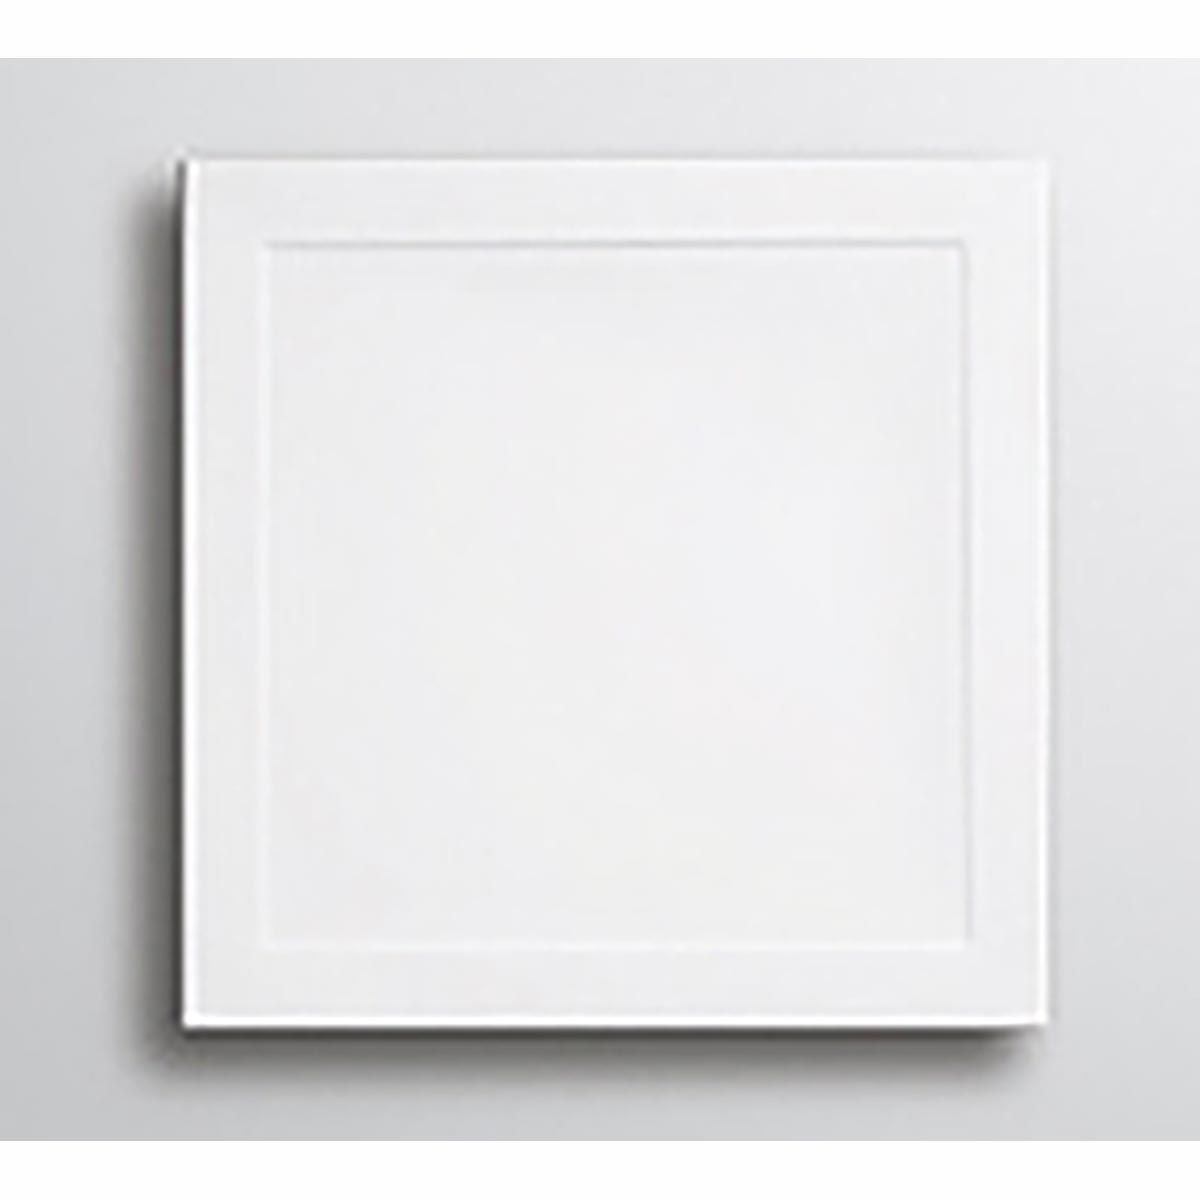 Lakes White Low Profile Square ABS Tray 1000mm